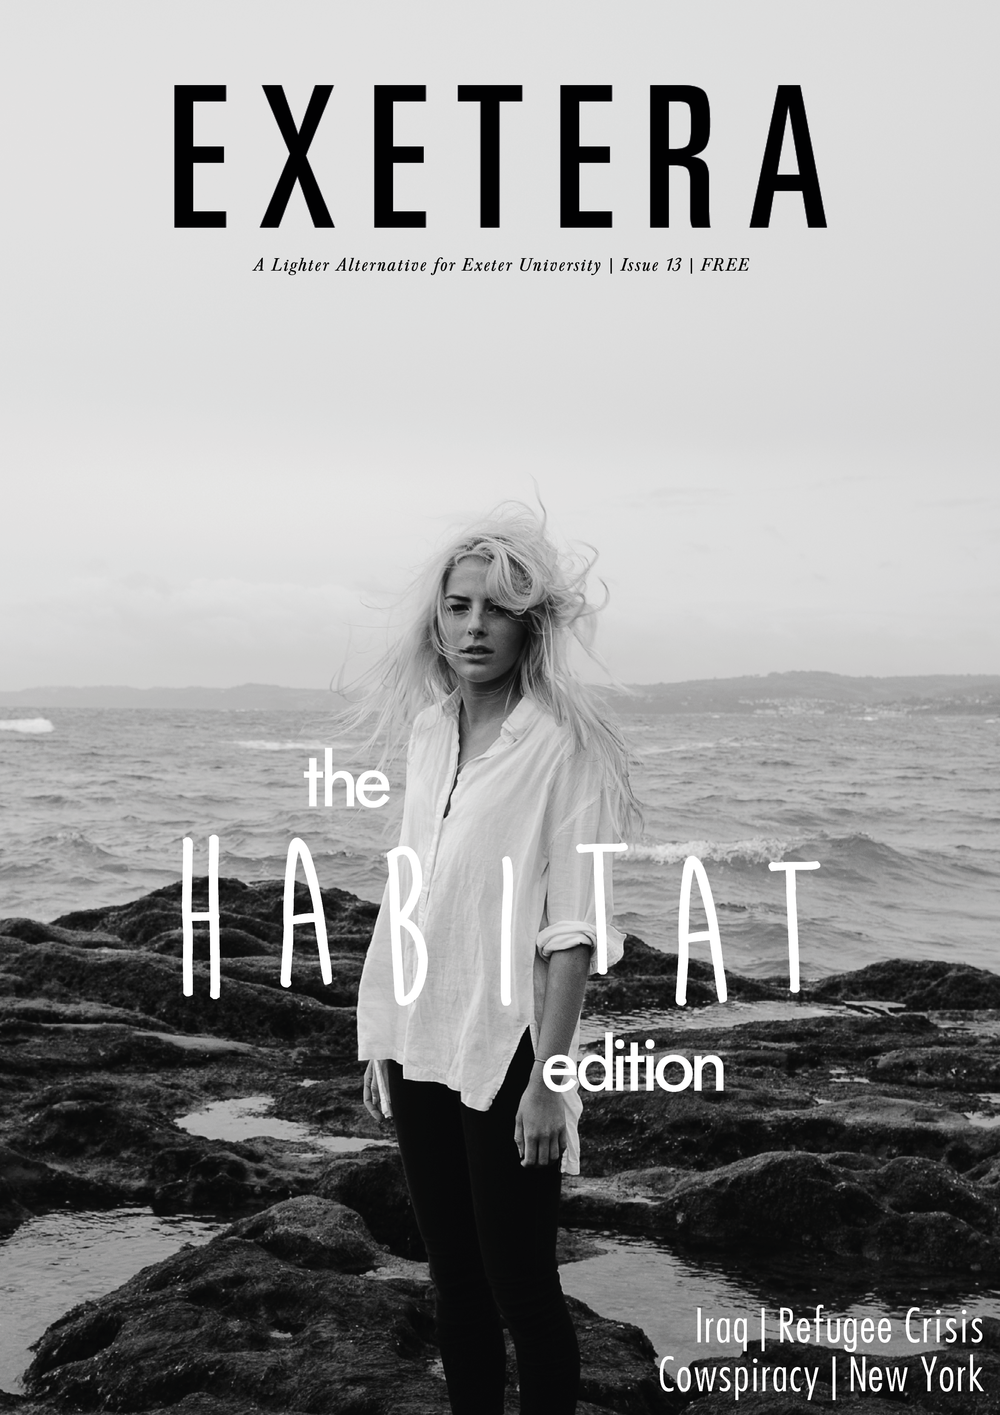 Exetera Magazine - The Habitat Edition | Issue 13